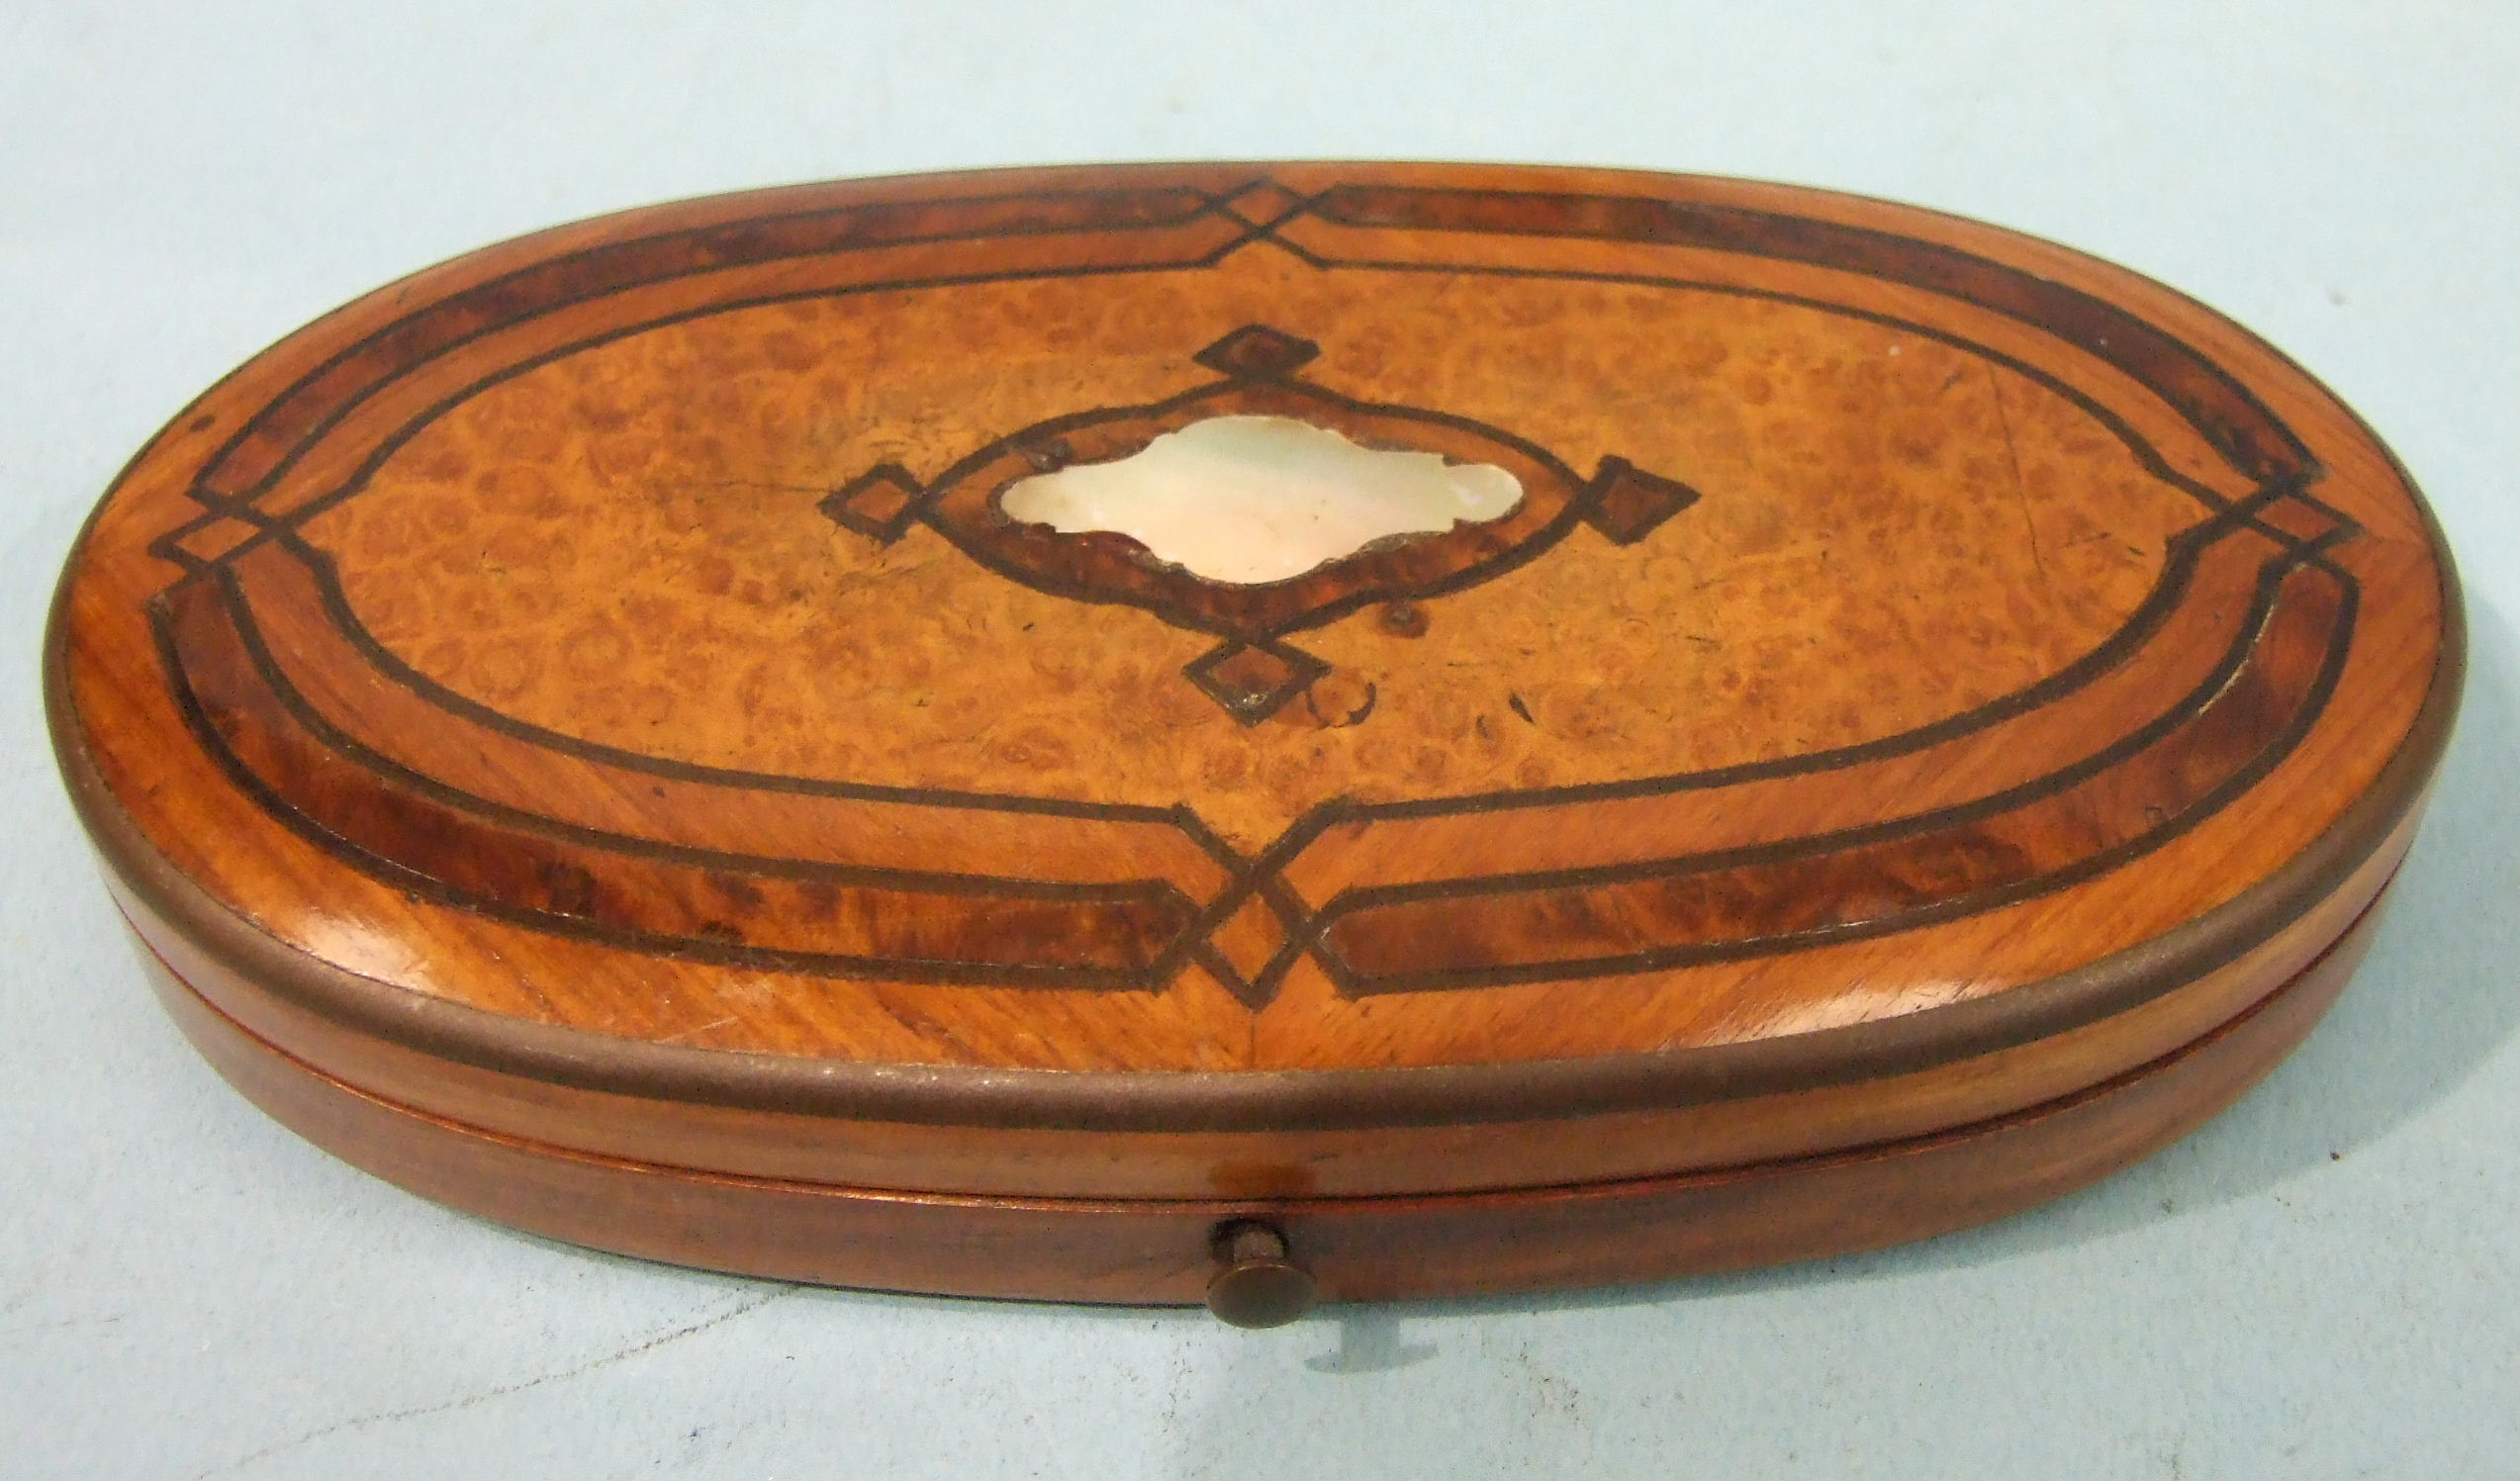 Lot 146 - A 19th century Continental etui, the oval burr wood and mother-of-pearl-inlaid case containing